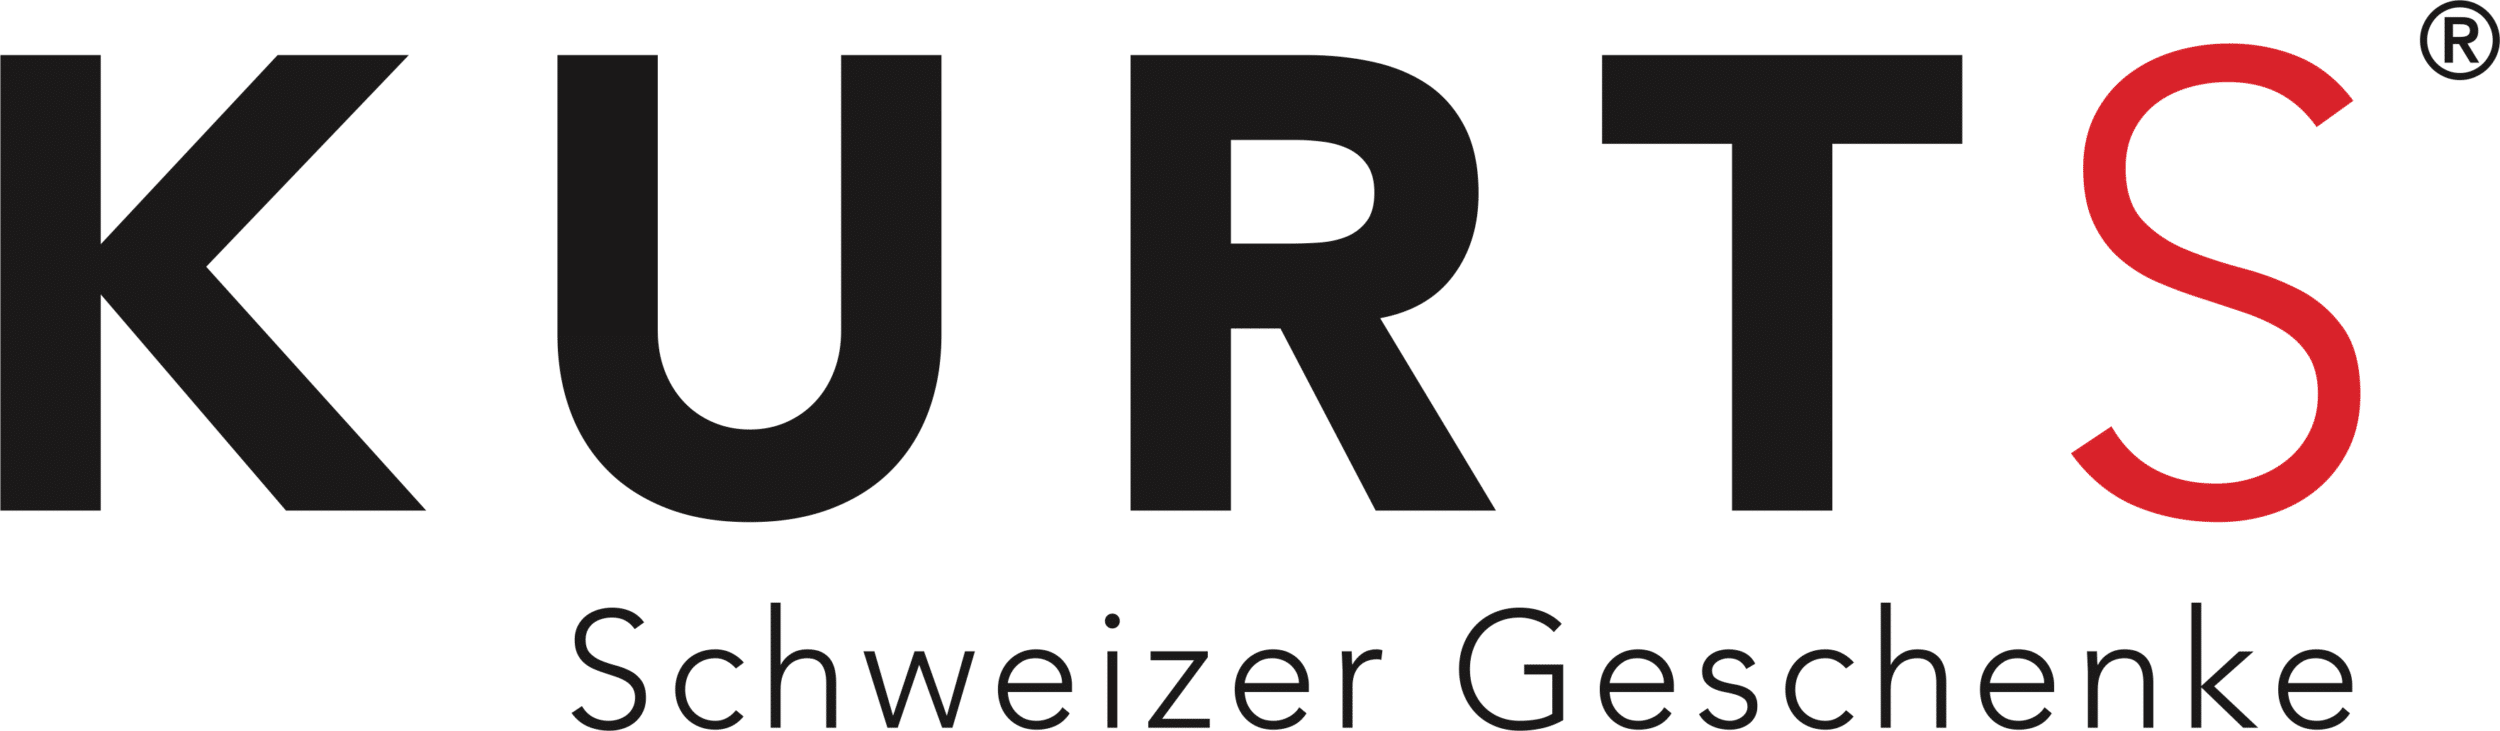 KURTS | Schweizer Geschenke